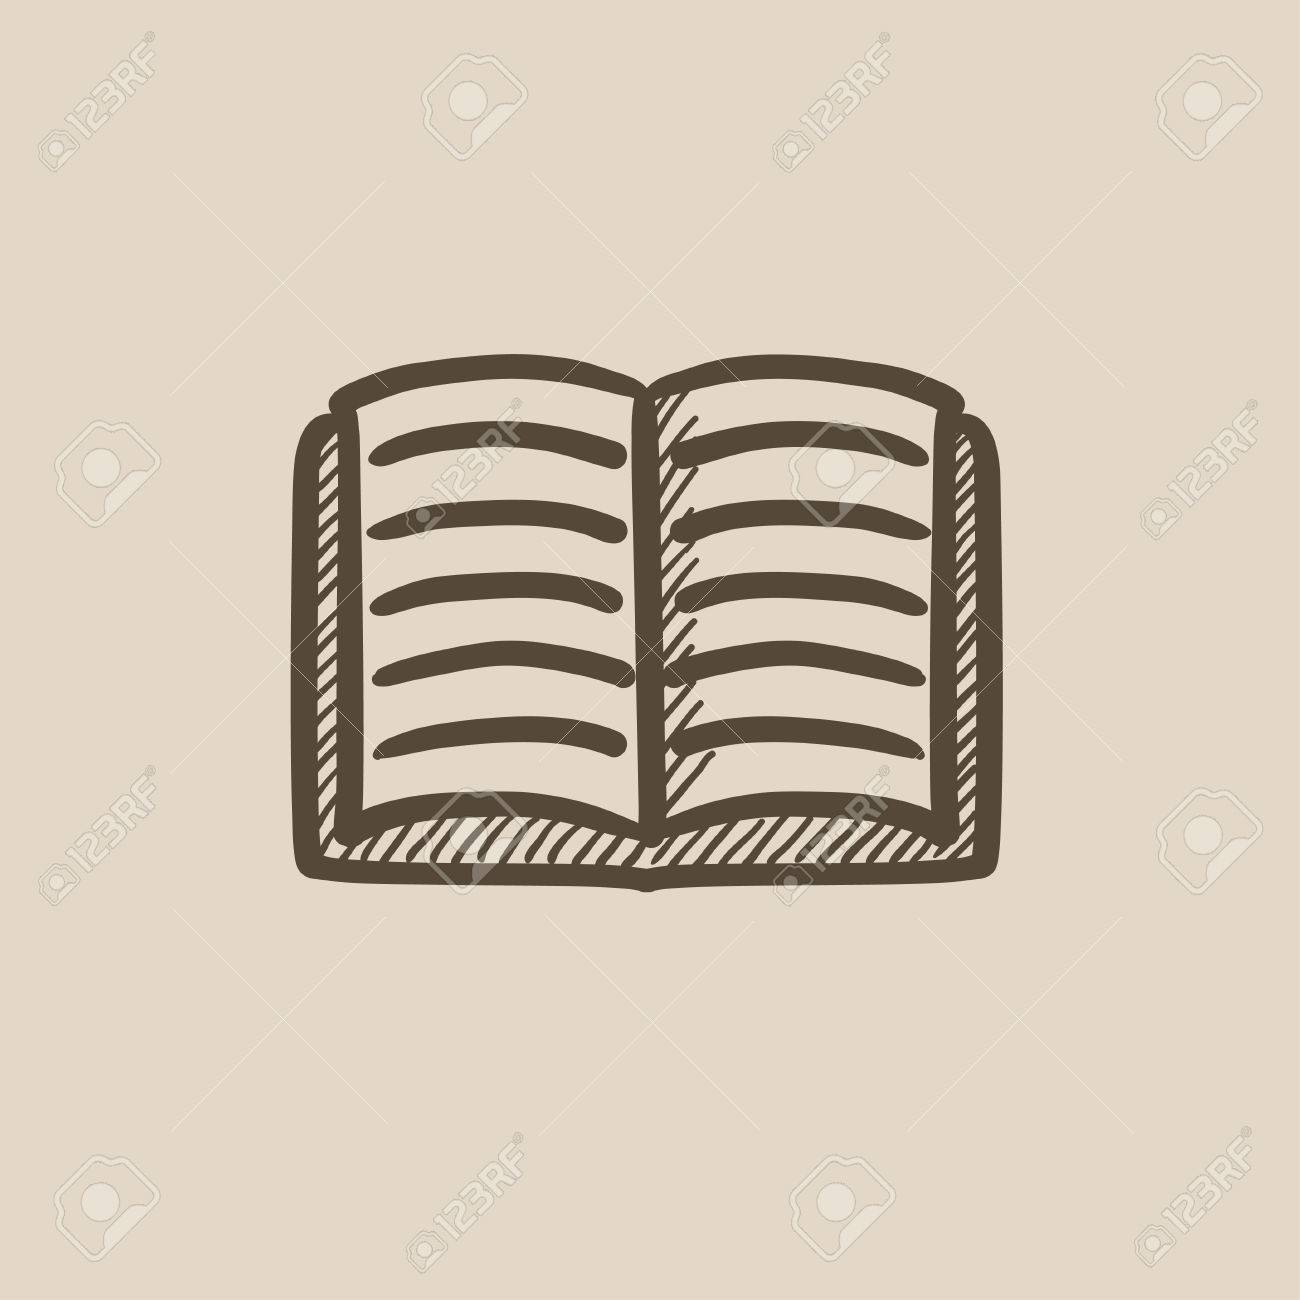 Open book vector sketch icon isolated on background  Hand drawn